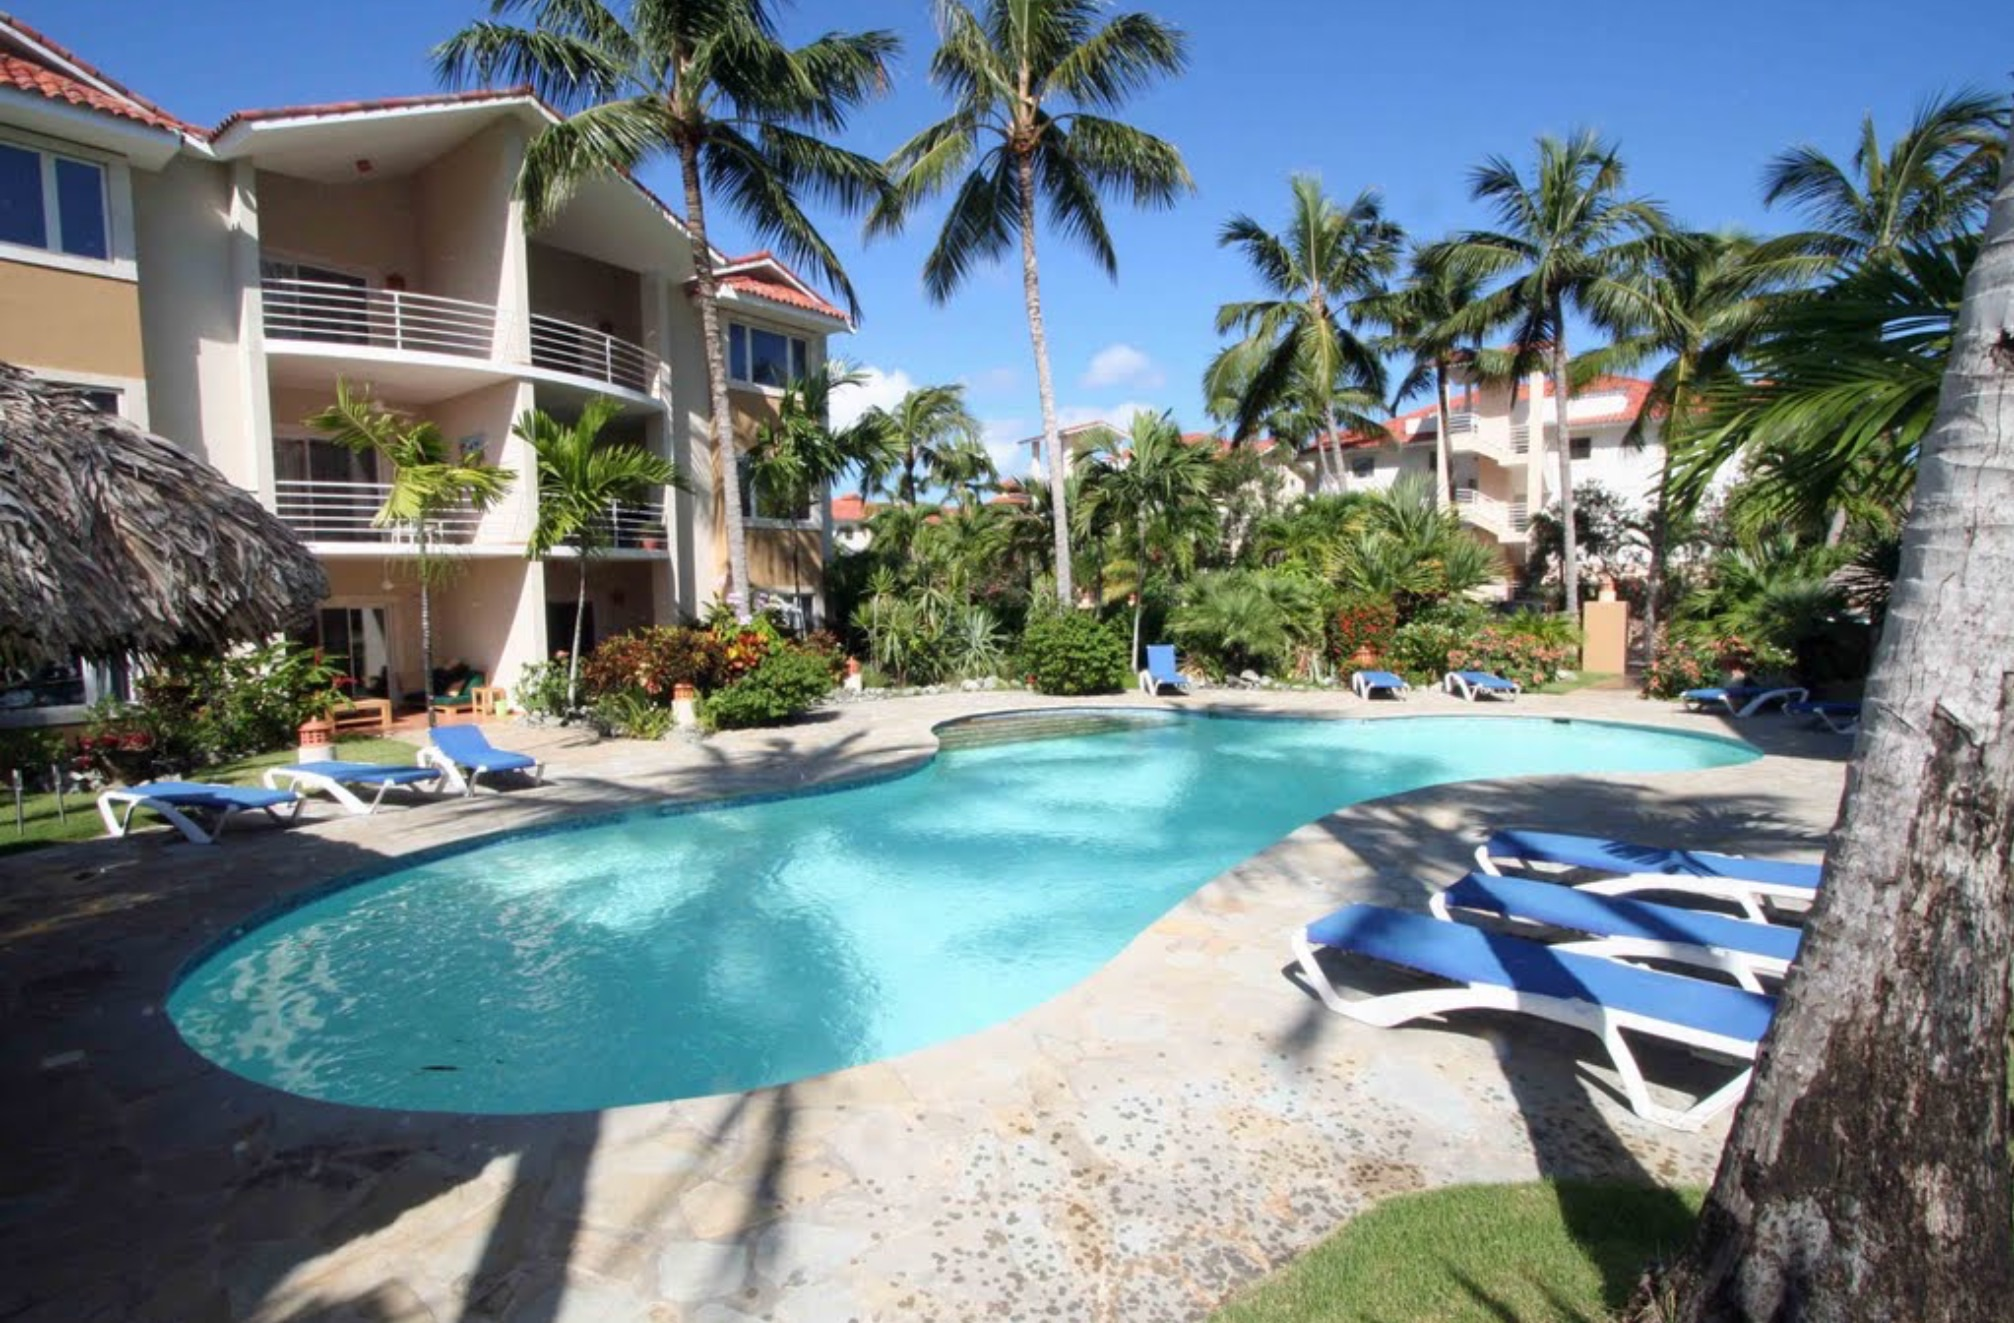 2 Bedroom Condo in Cabarete